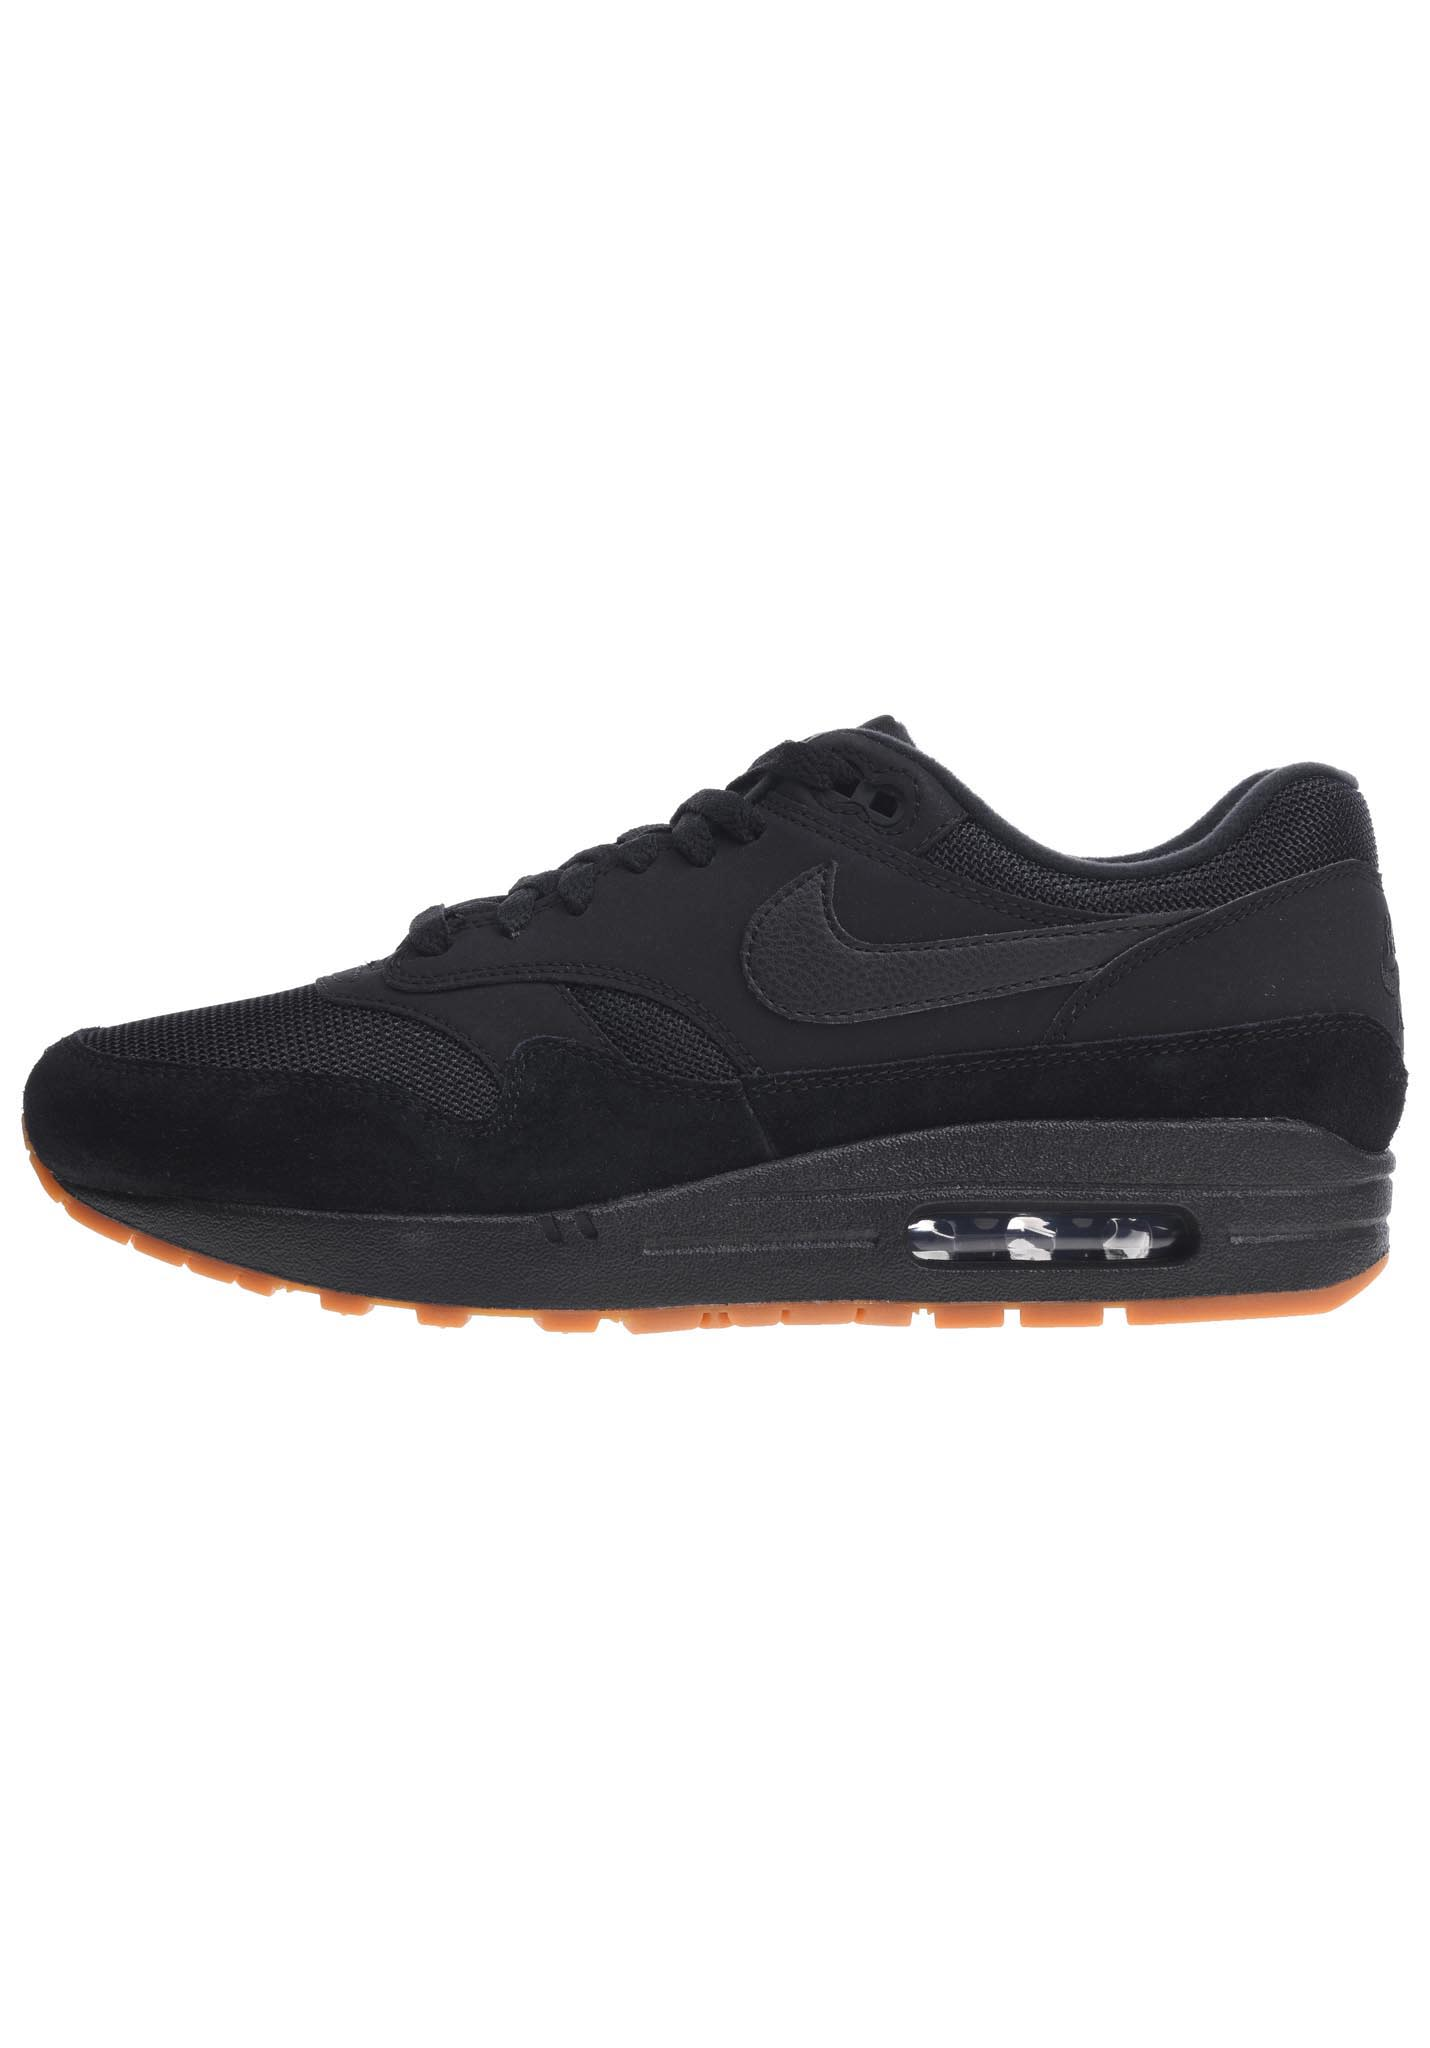 : NIKE Sportswear Air 1 Men's Athletic Casual